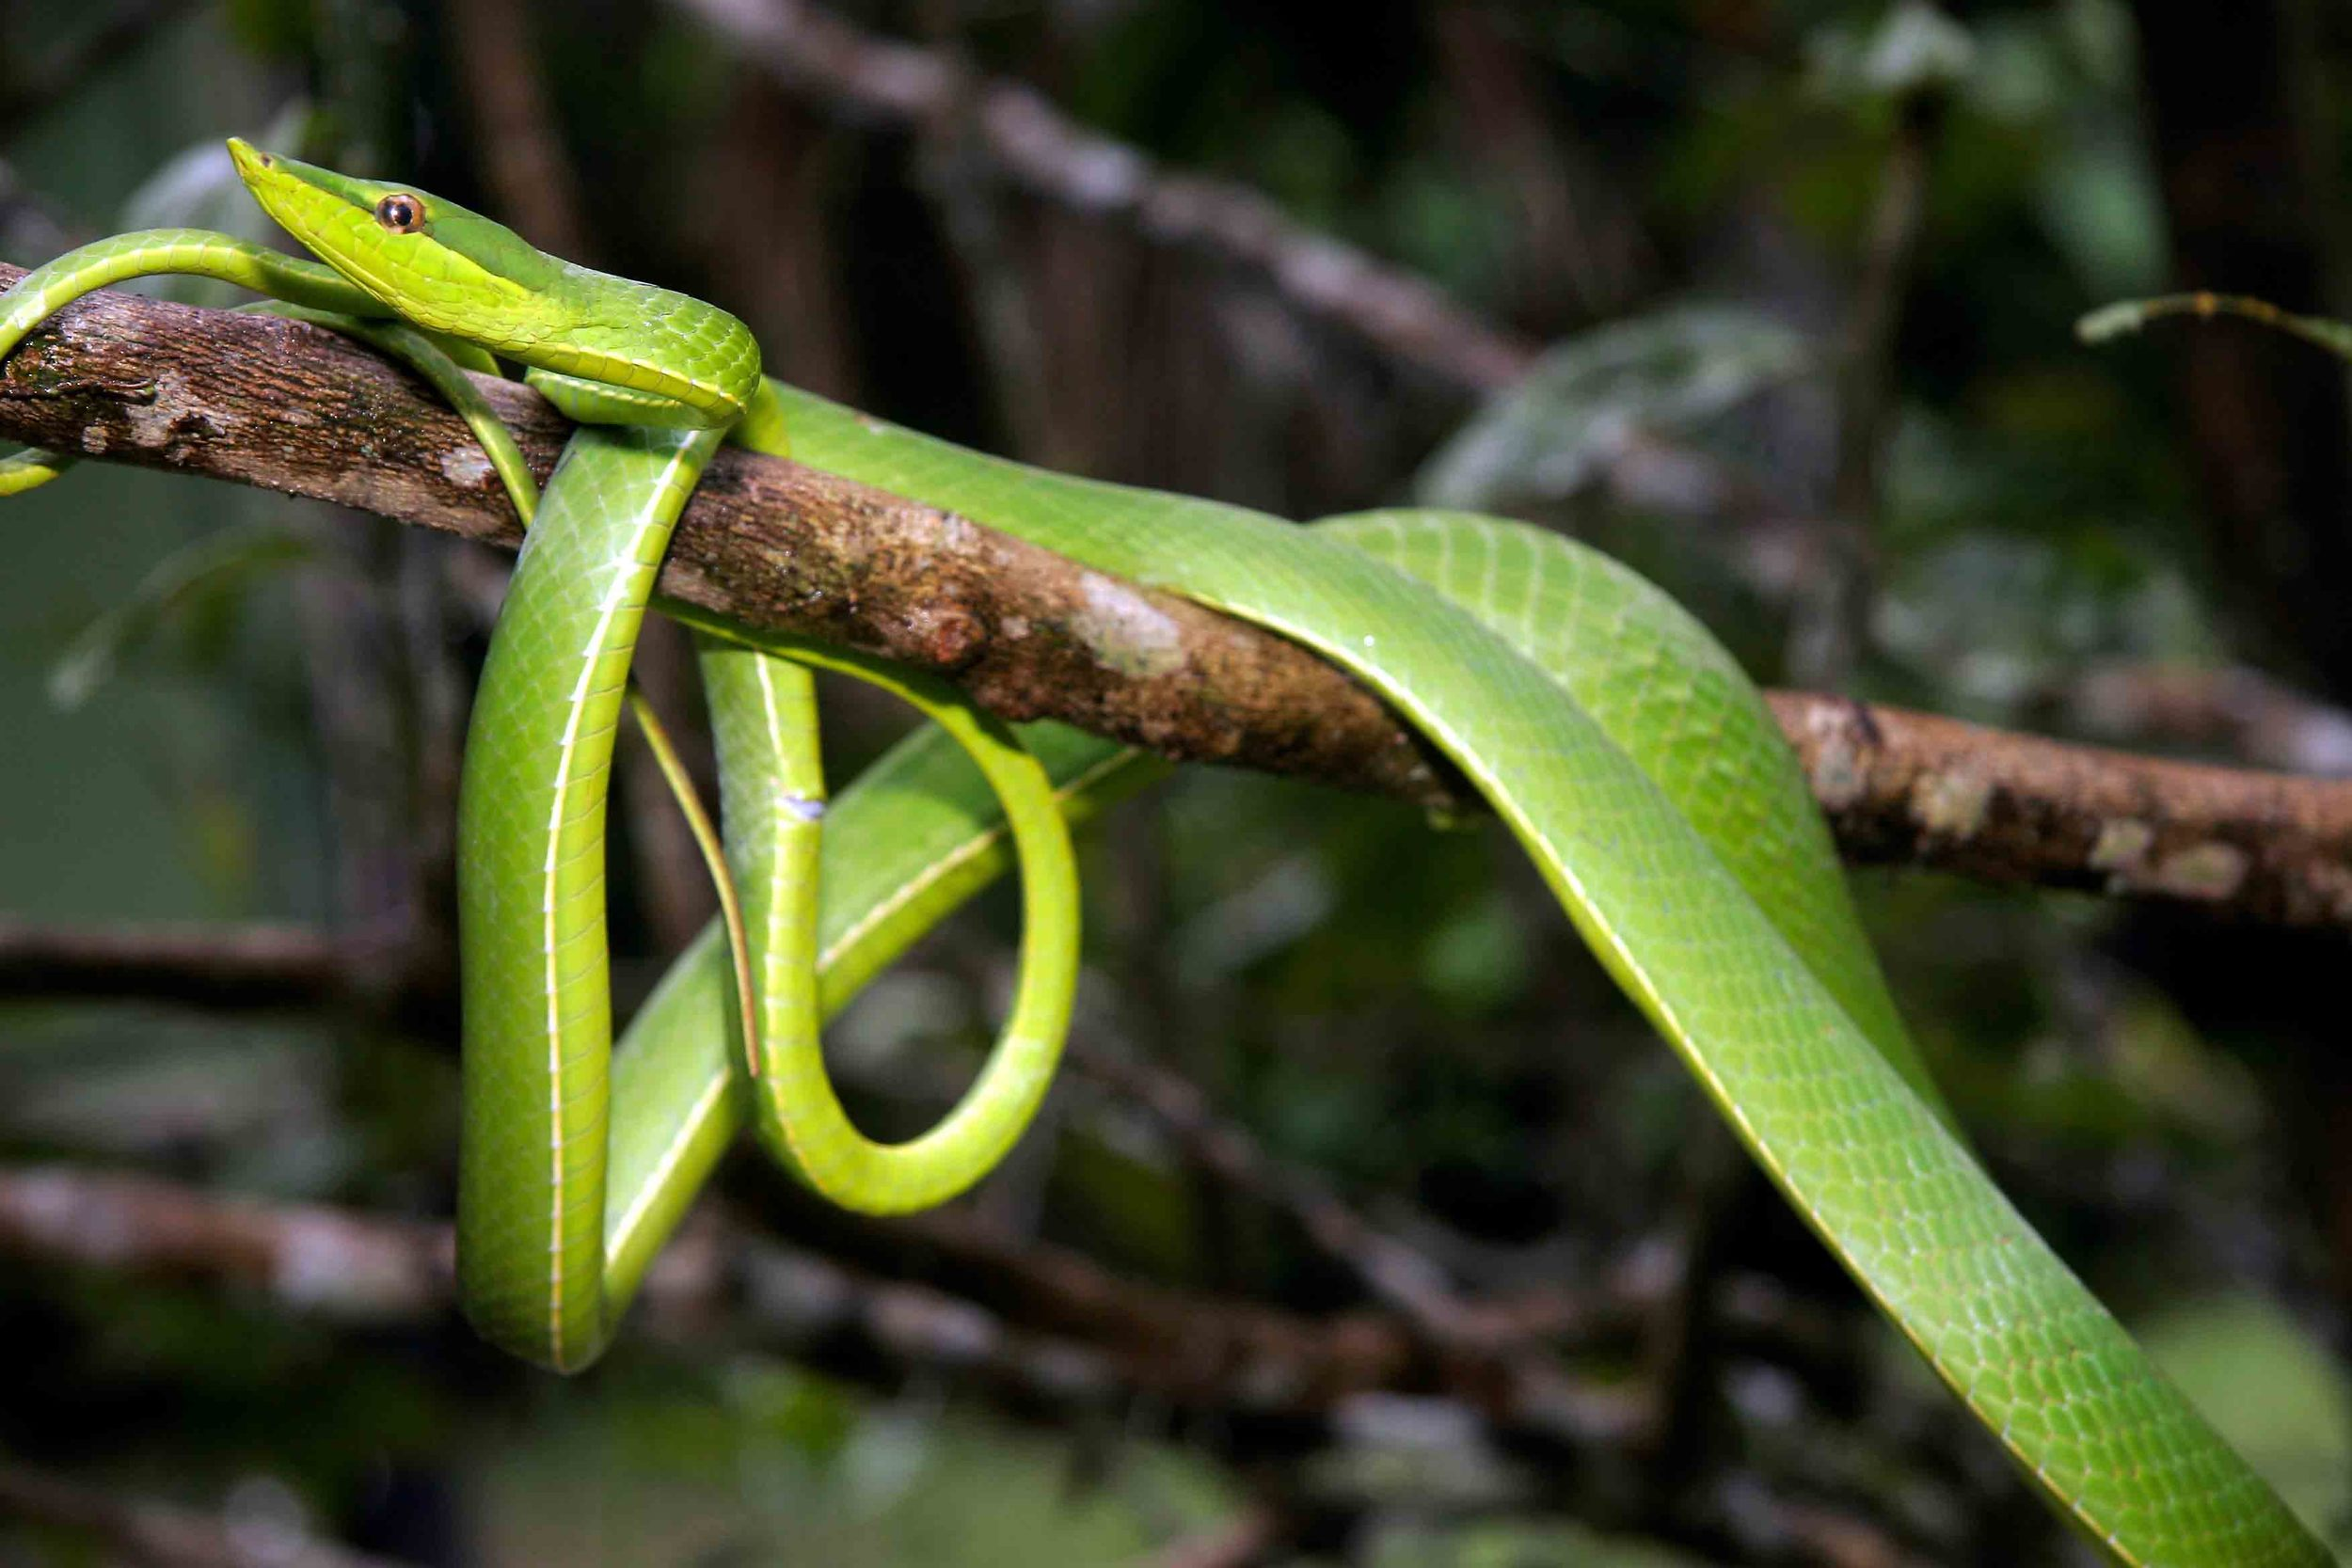 Oxybelis fulgidus, Green Vine Snake (Photo by Matt Cage)